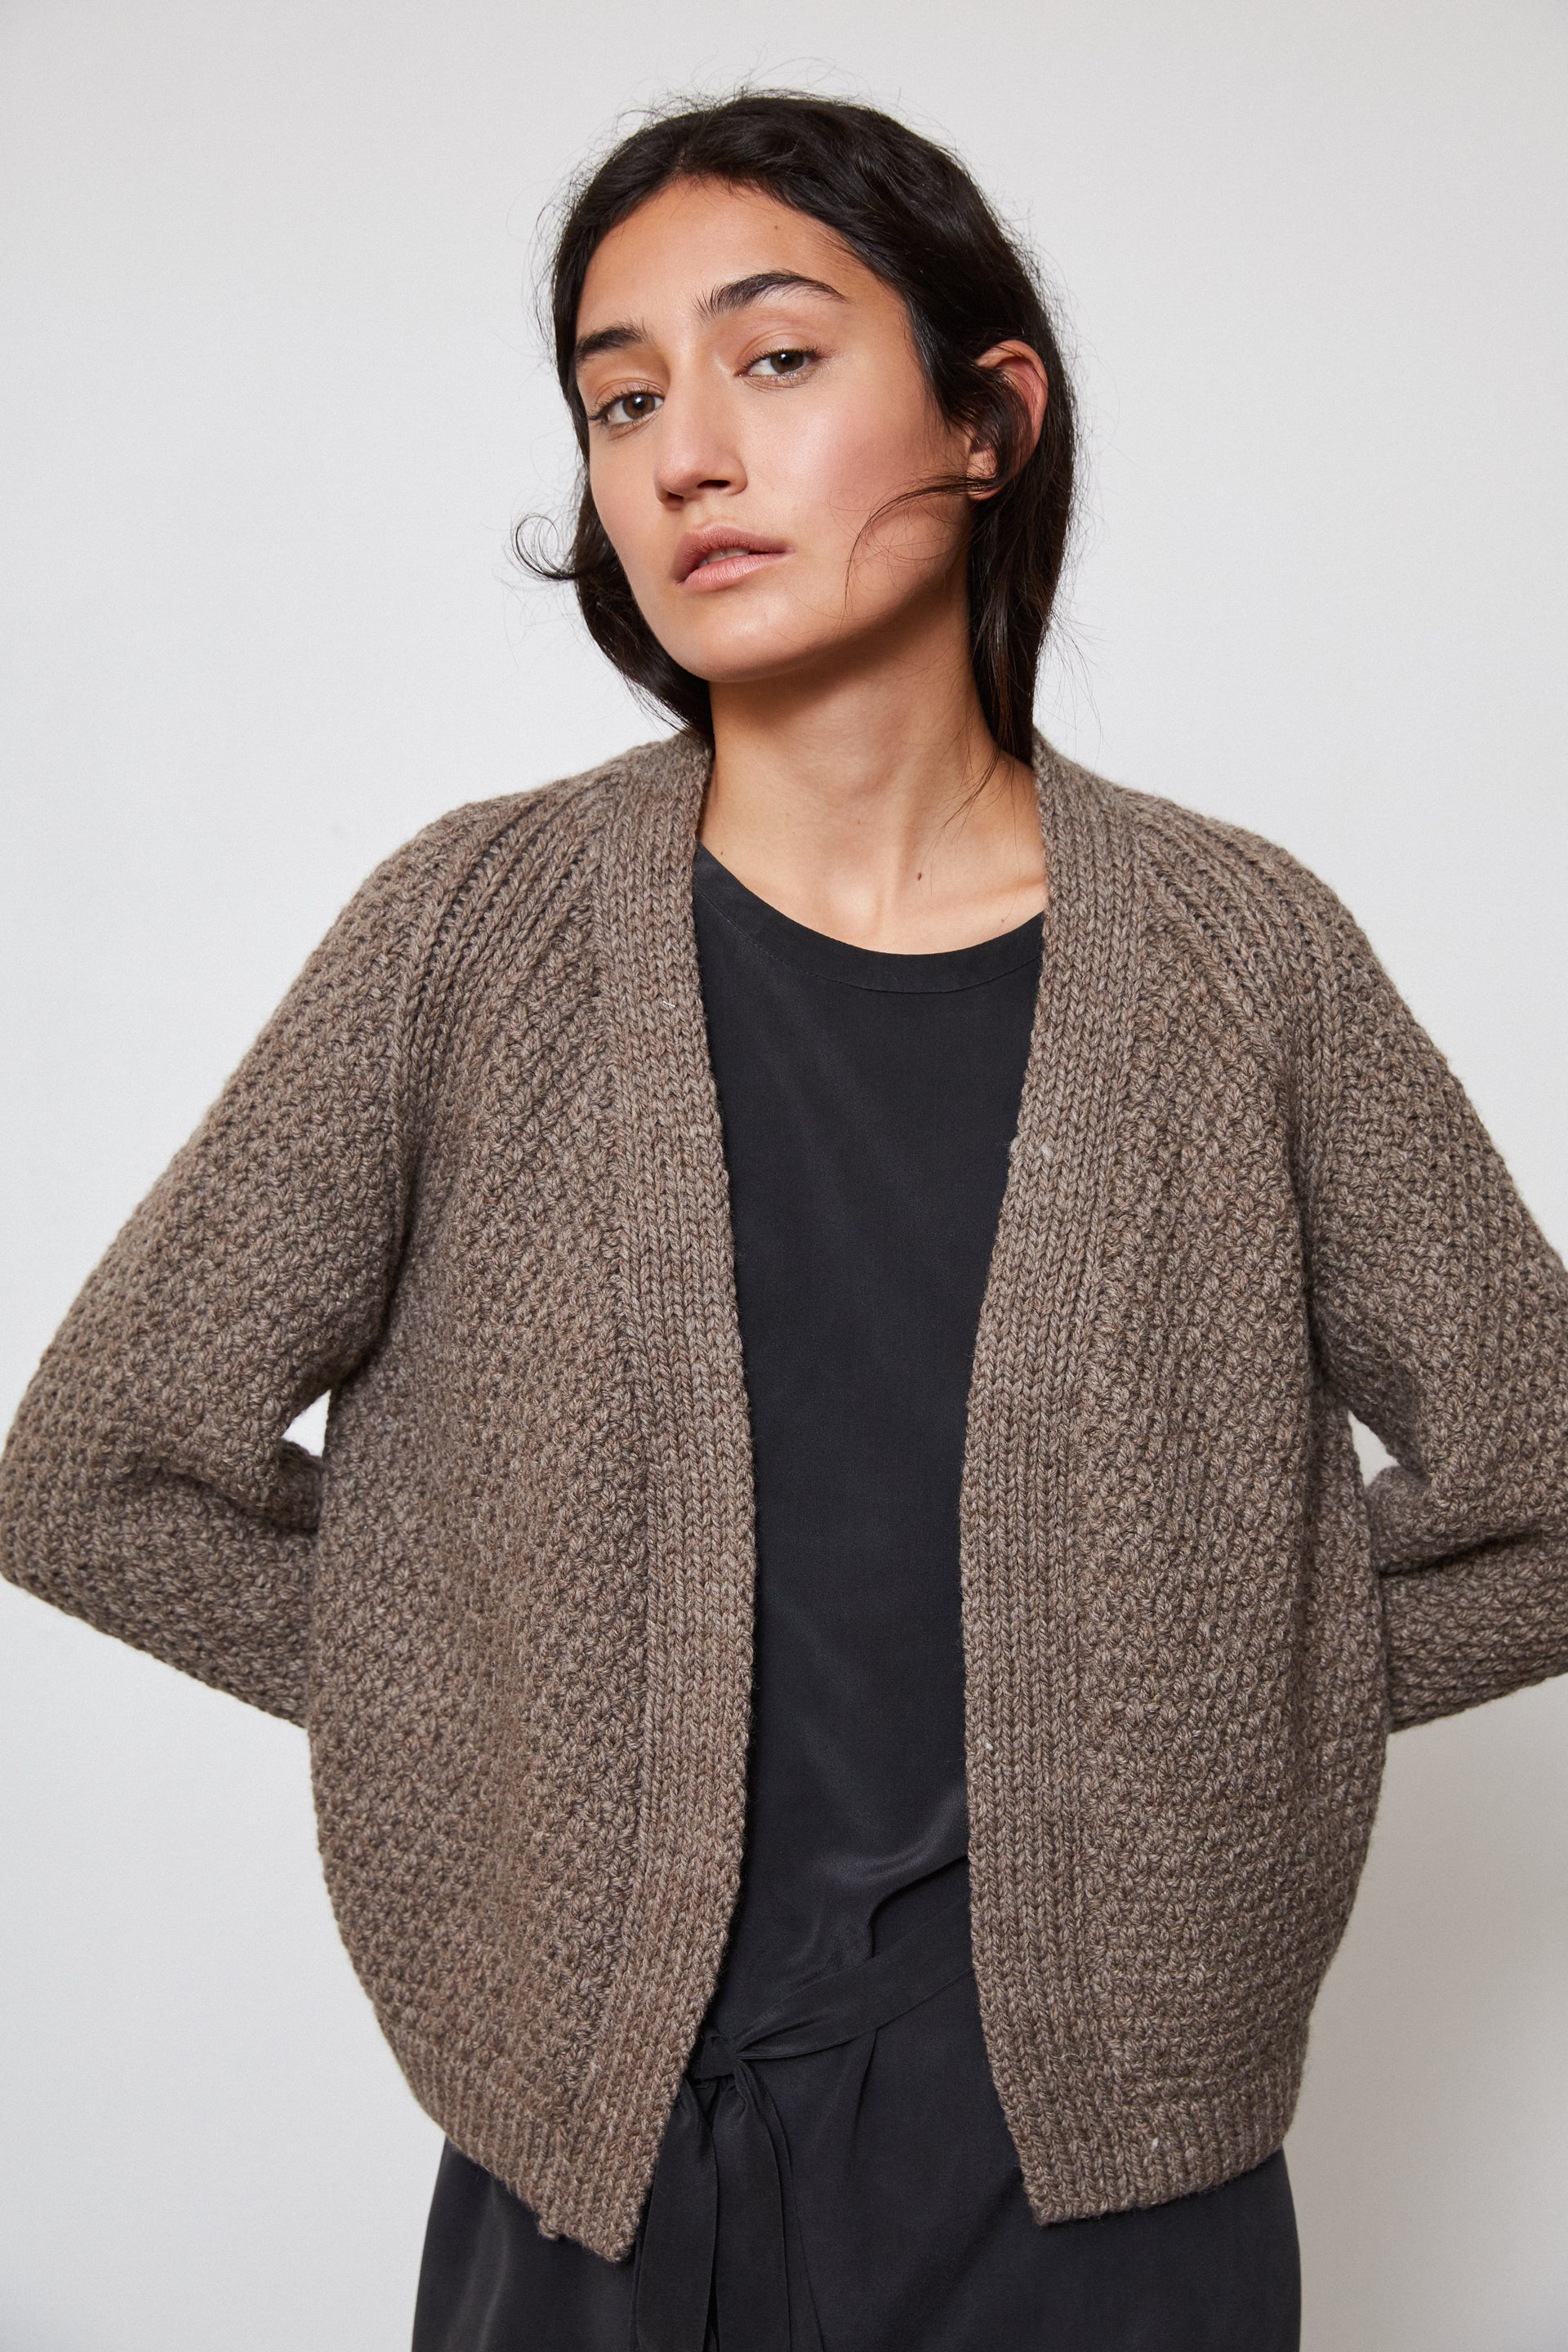 HAND KNITTED WOOL CARDIGAN - CUB